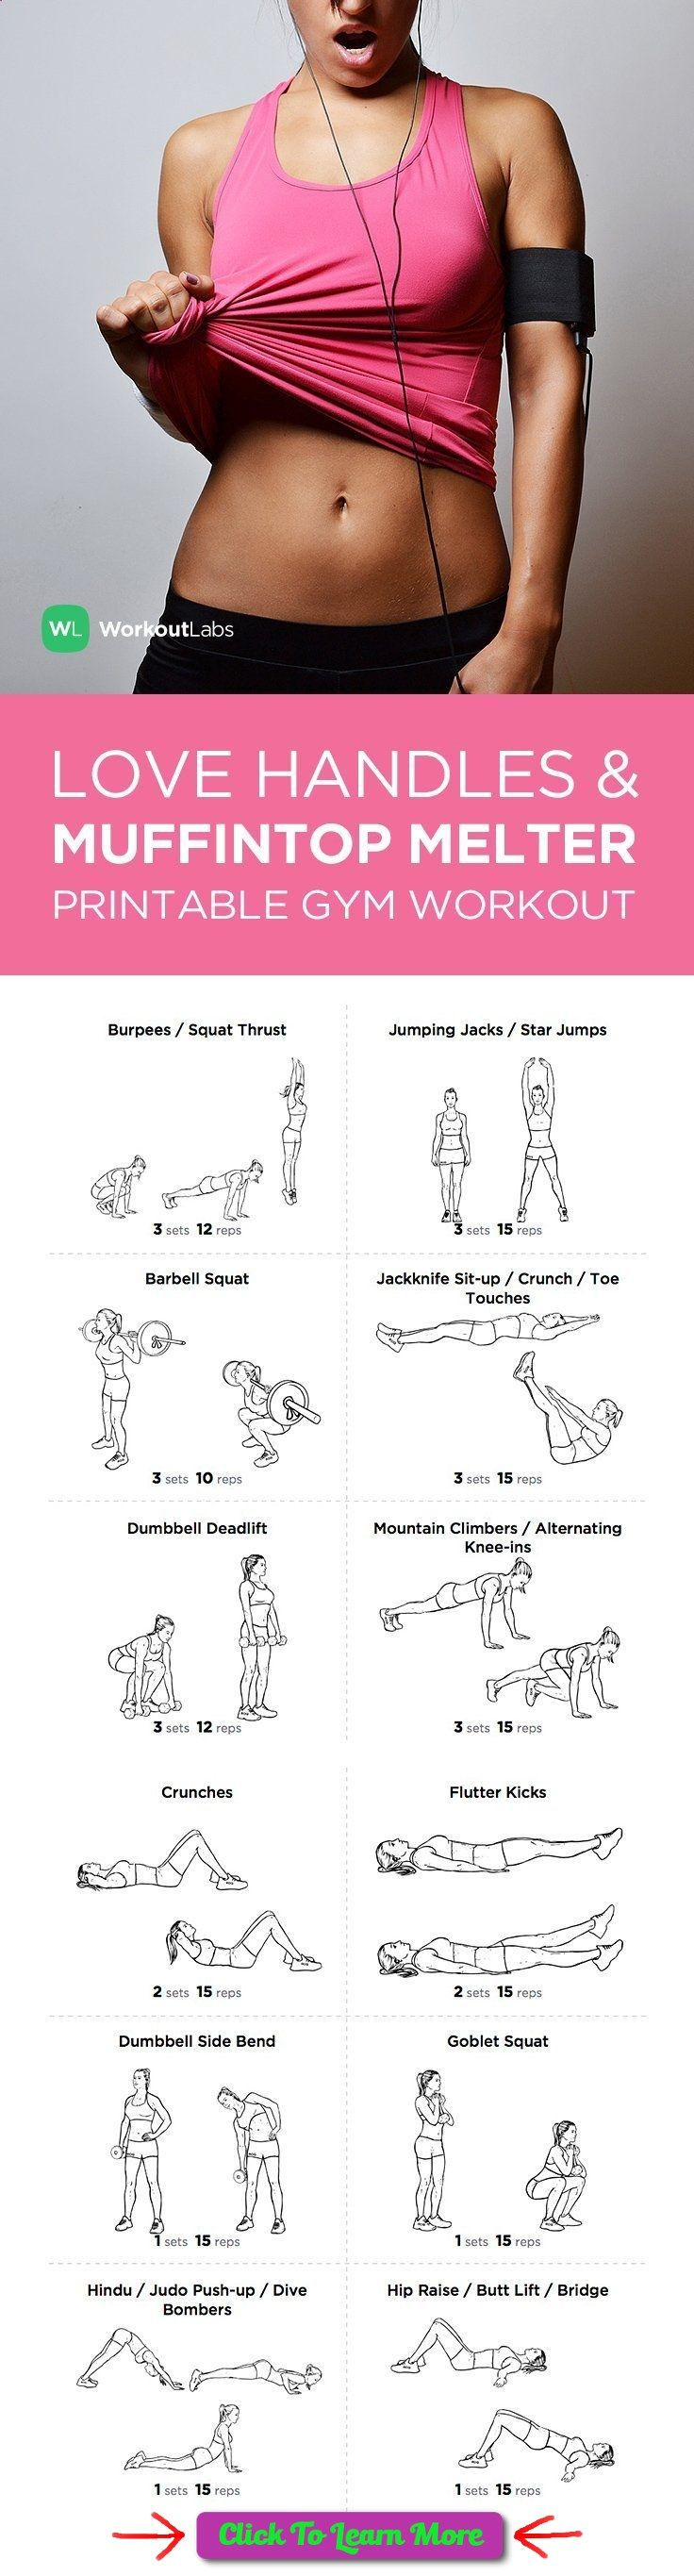 best weight loss programs, fastest way to lose fat in a week, how to lose weight in your stomach - FREE PDF: Love Handles and Muffin Top Melter Printable Gym Workout for Women – visit wlabs.me/1sS9gnH to download! #health #fitness #weightloss #healthyrecipes #weightlossrecipes